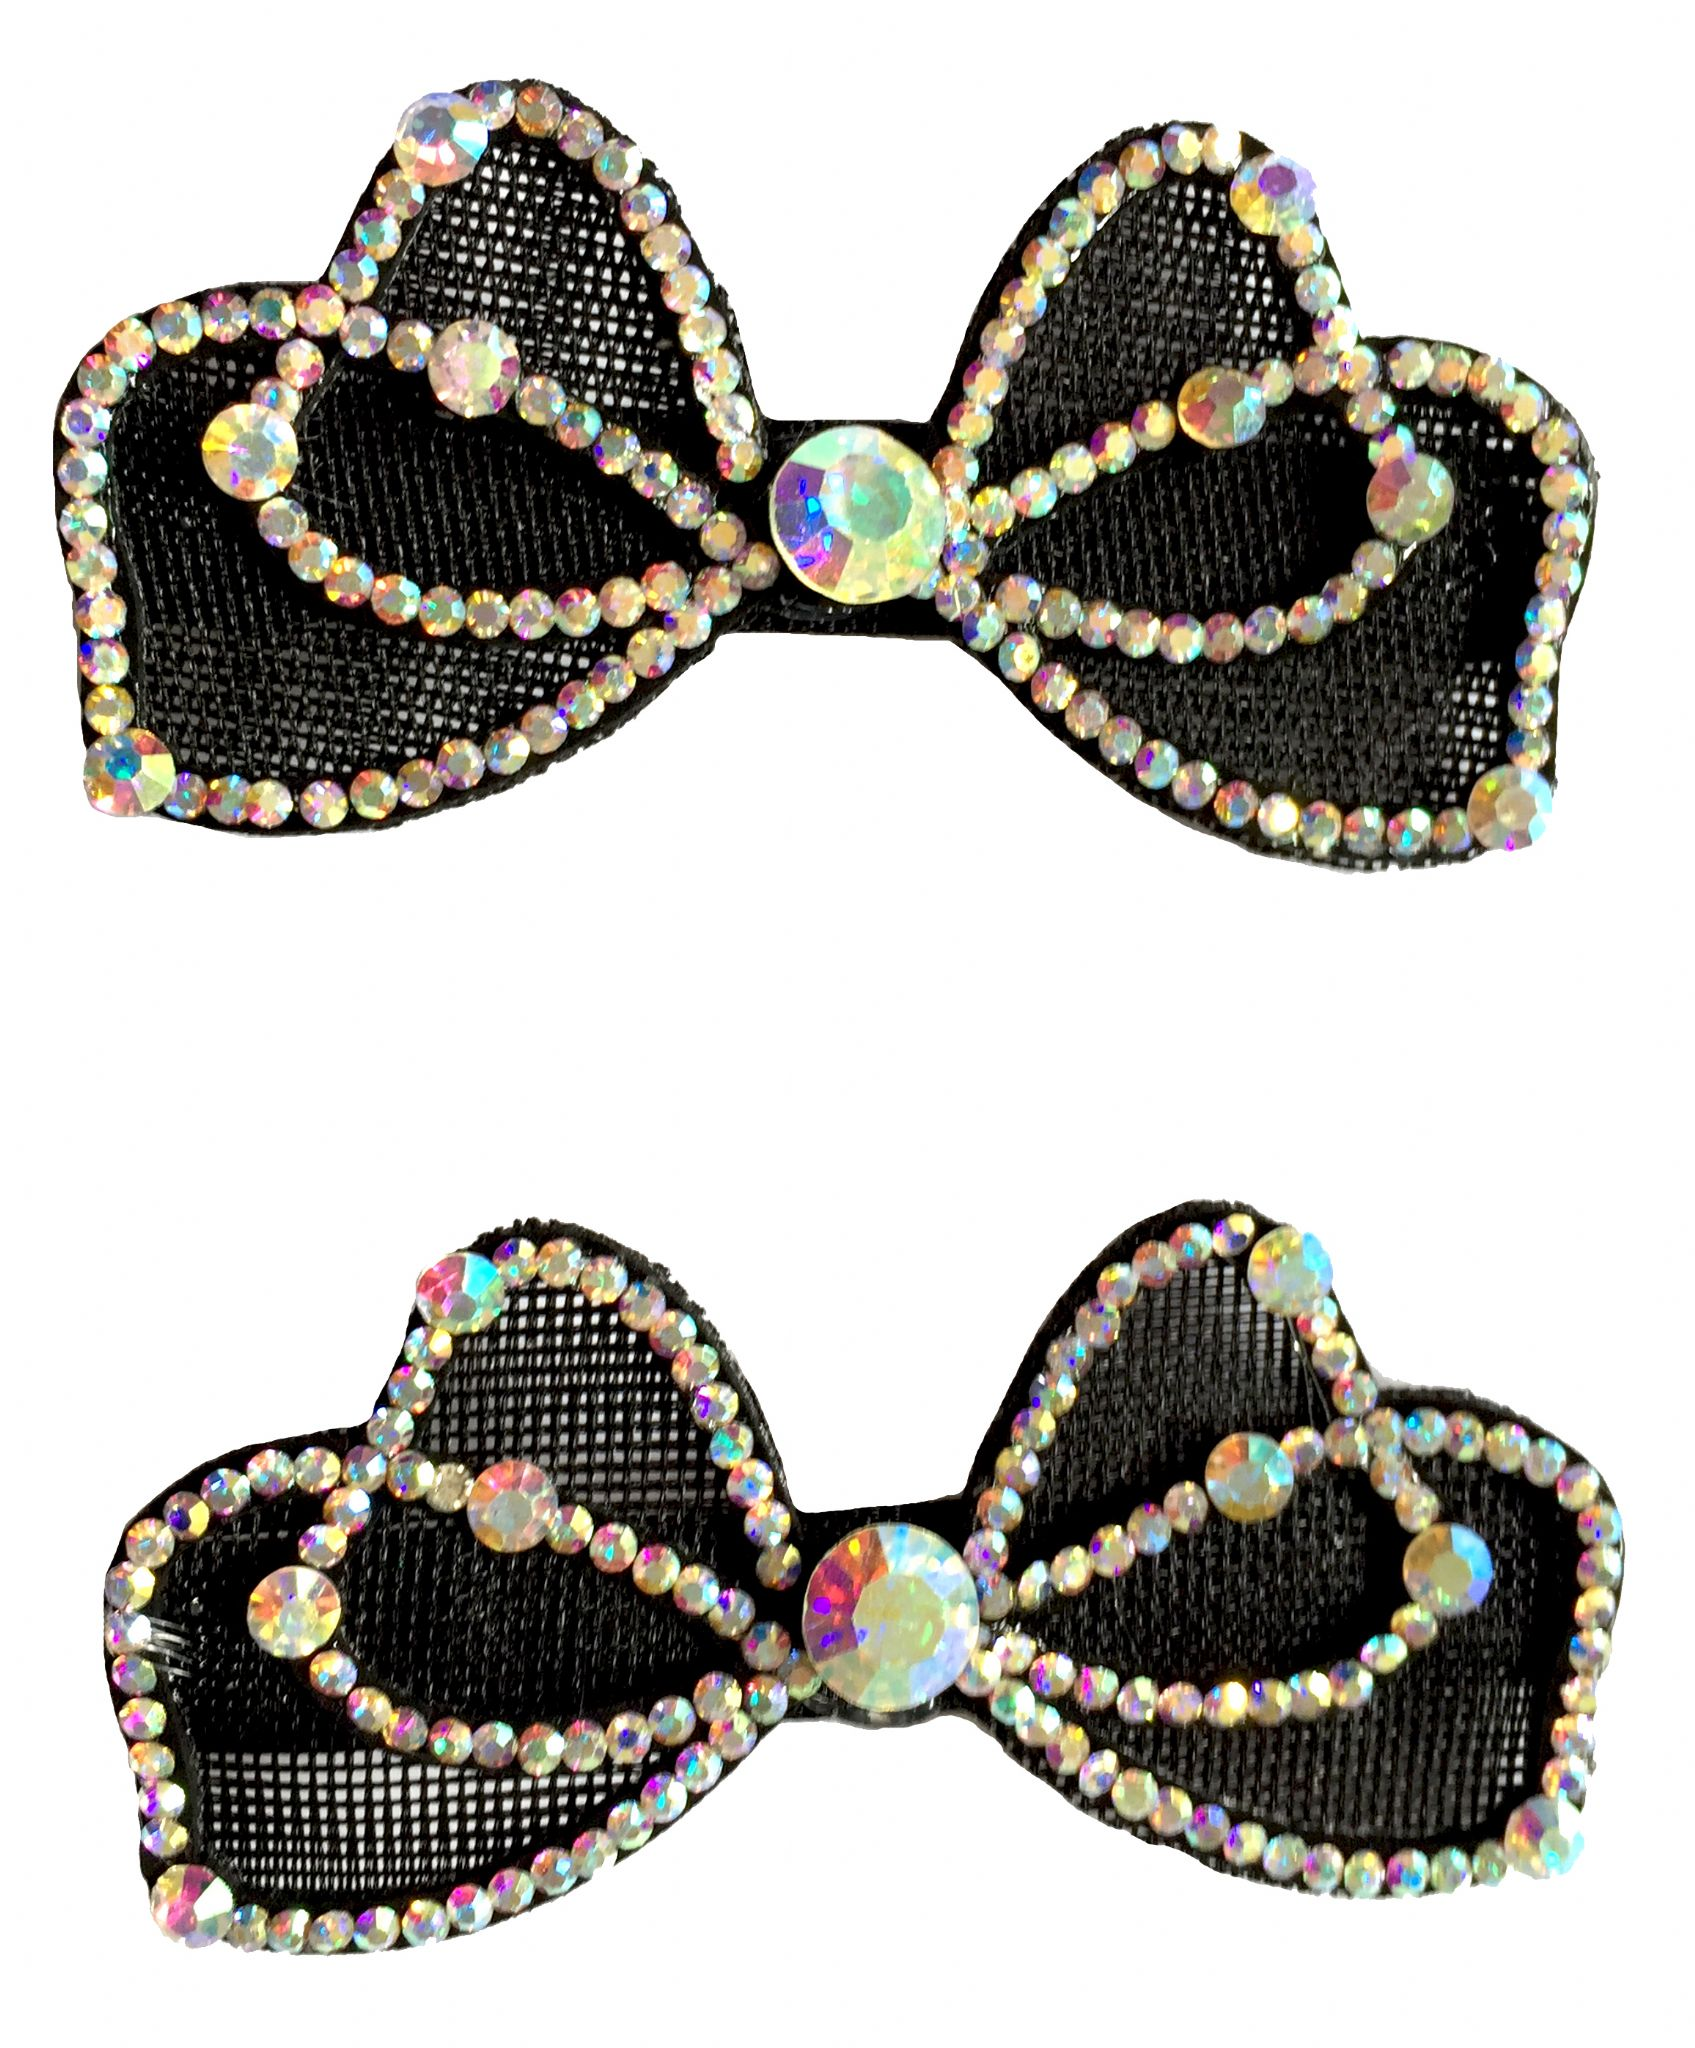 http://www.conmigolondon.co.uk/ekmps/shops/conmigo/images/1.-al0040-eye-catching-black-bow-with-colourful-sequin-hair-slids-2-pieces-%5B5%5D-15478-p.jpg